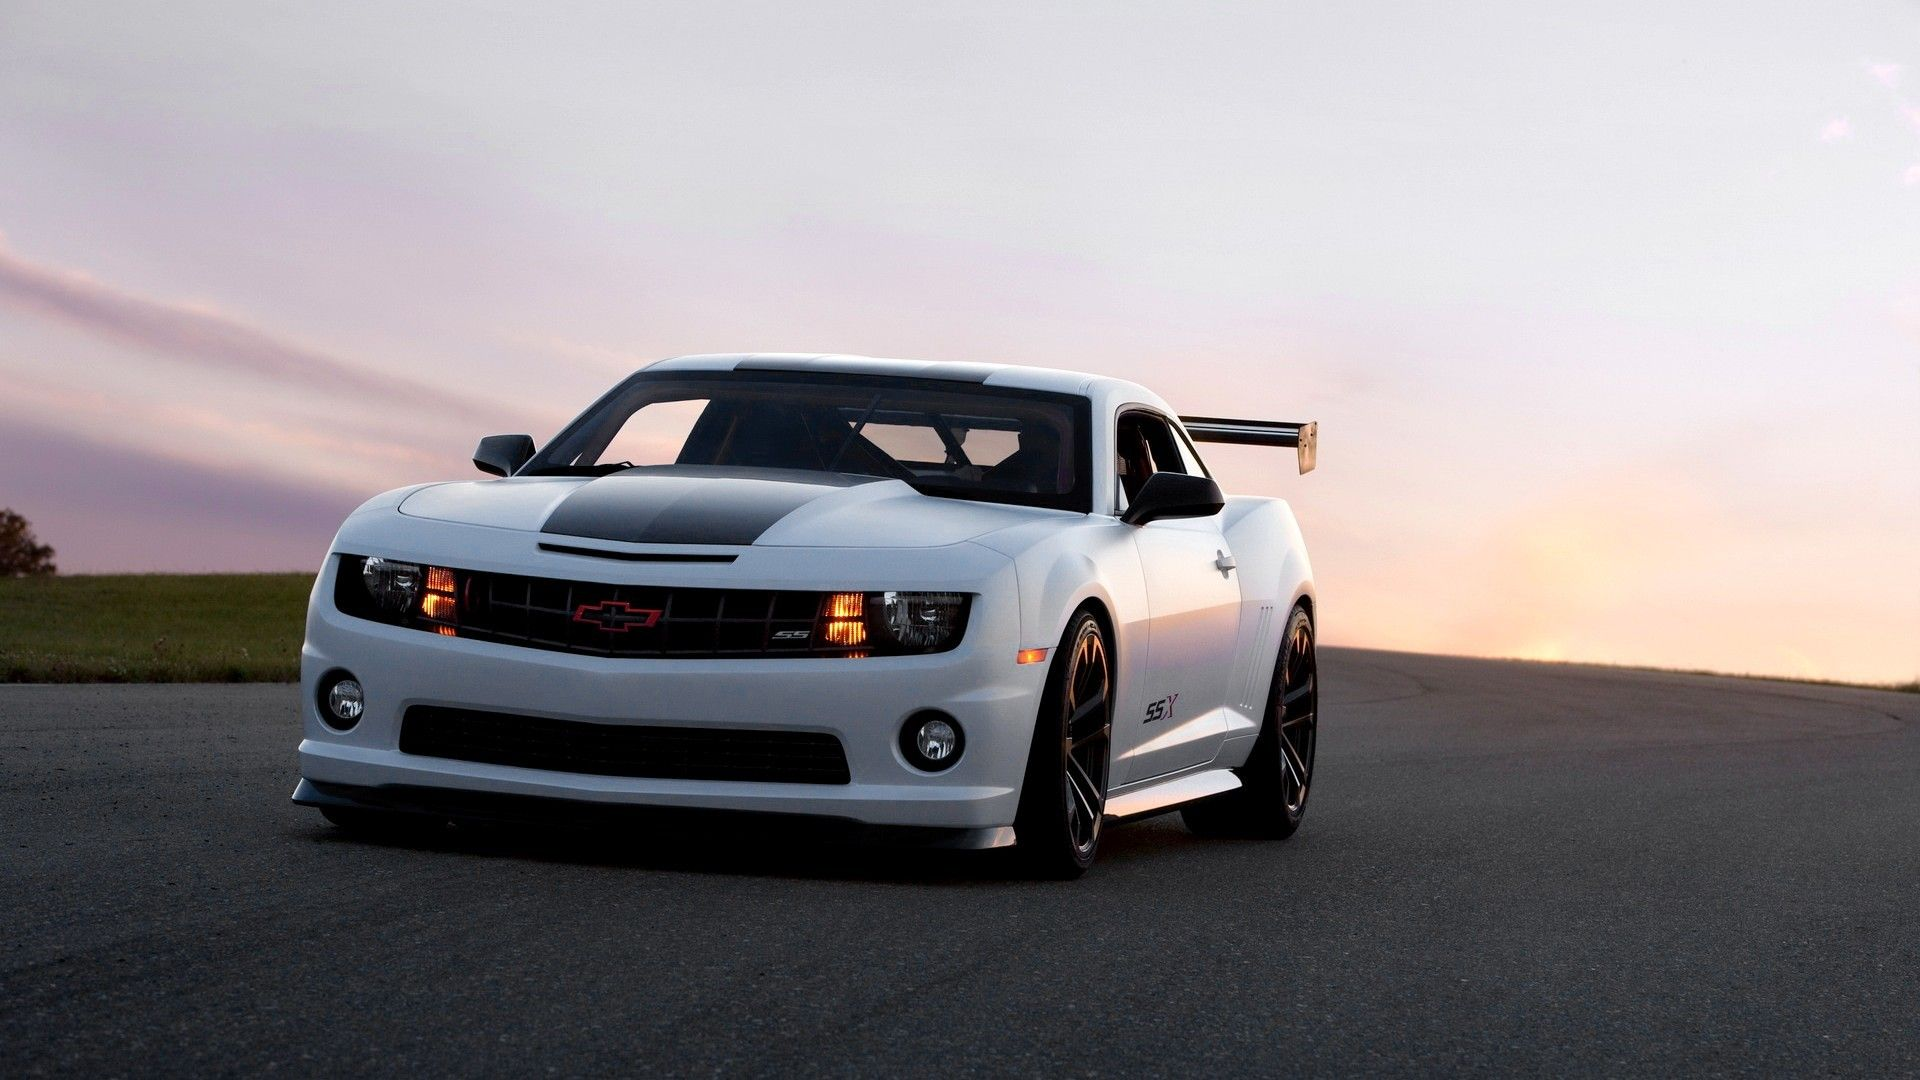 Chevrolet Camaro Wallpaper Hd For Desktop wallpapers Pinterest